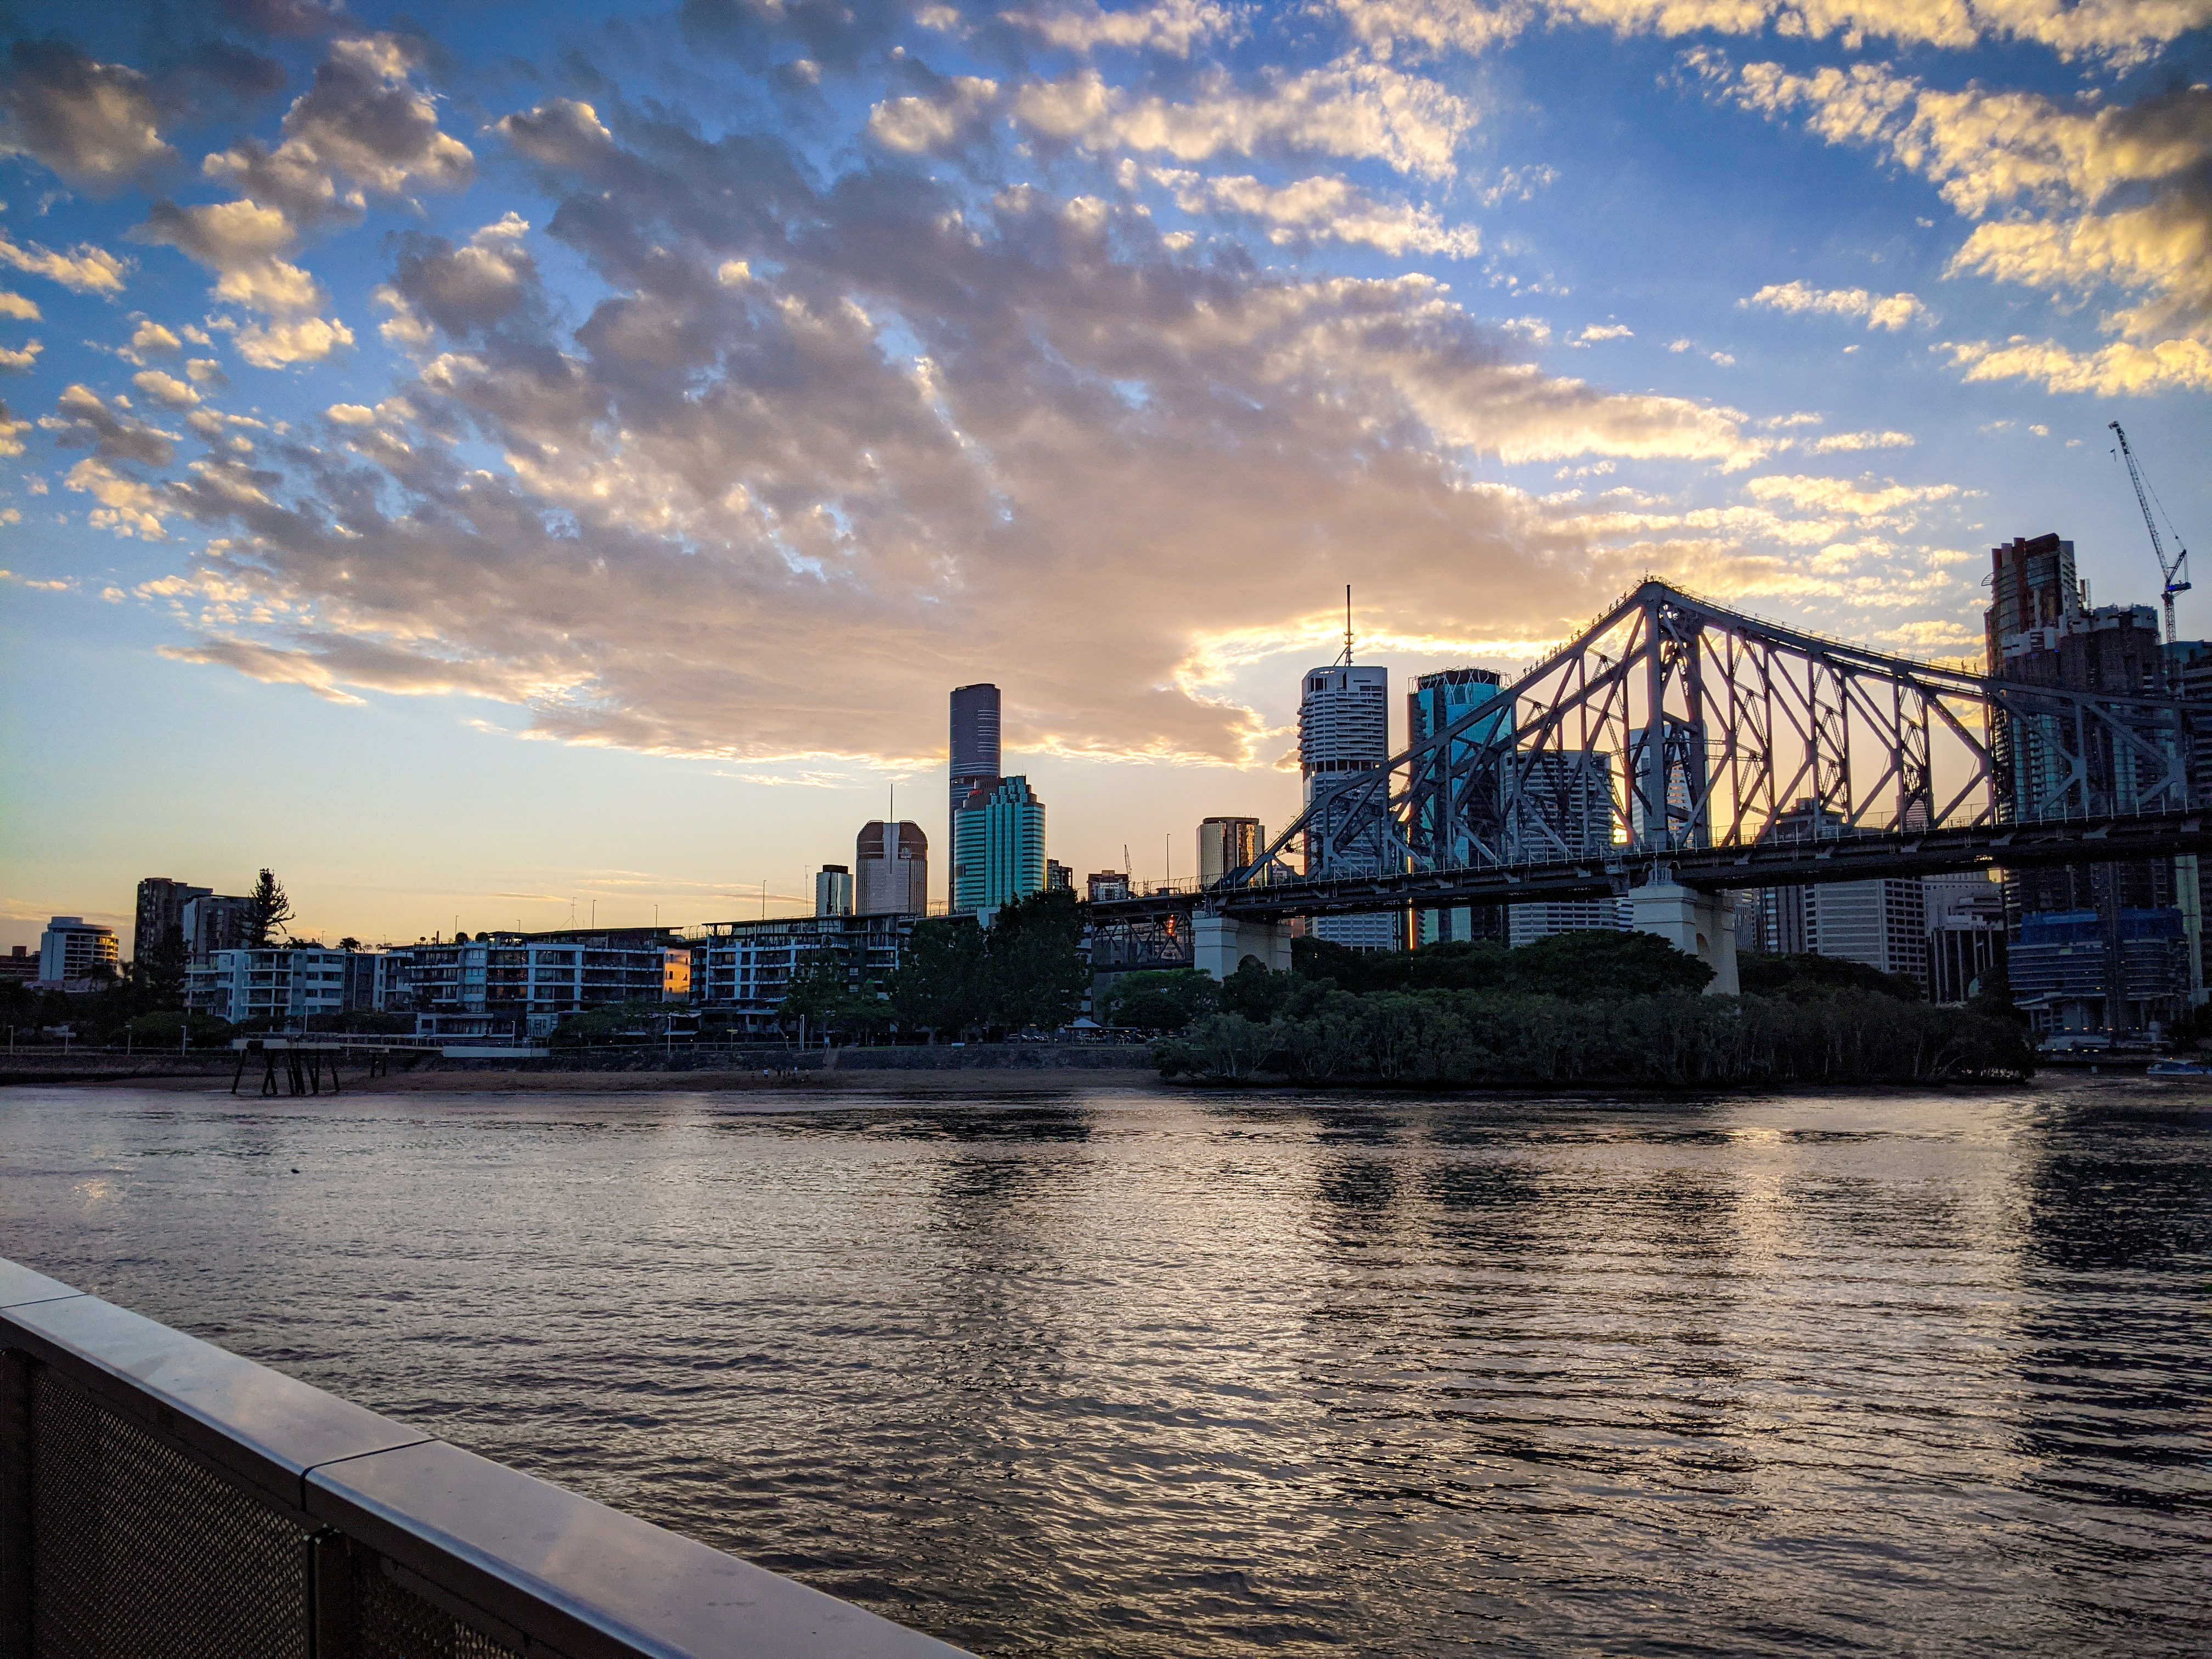 The south support of the Storey Bridge with sunset behind the Brisbane CBD